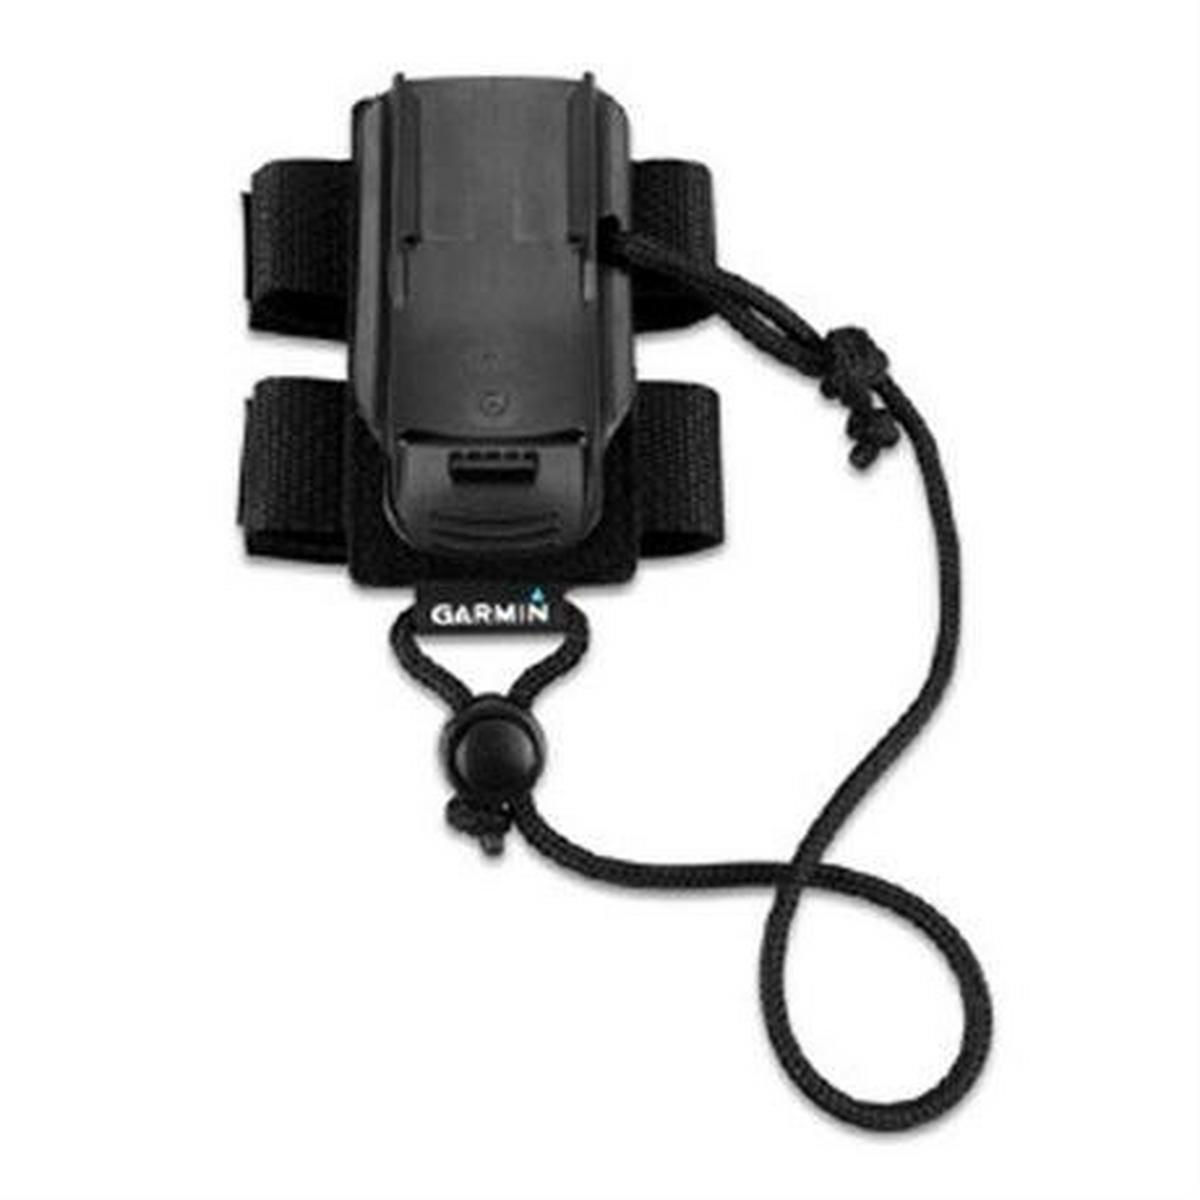 Garmin GPS Spare/Accessory: Backpack Tether